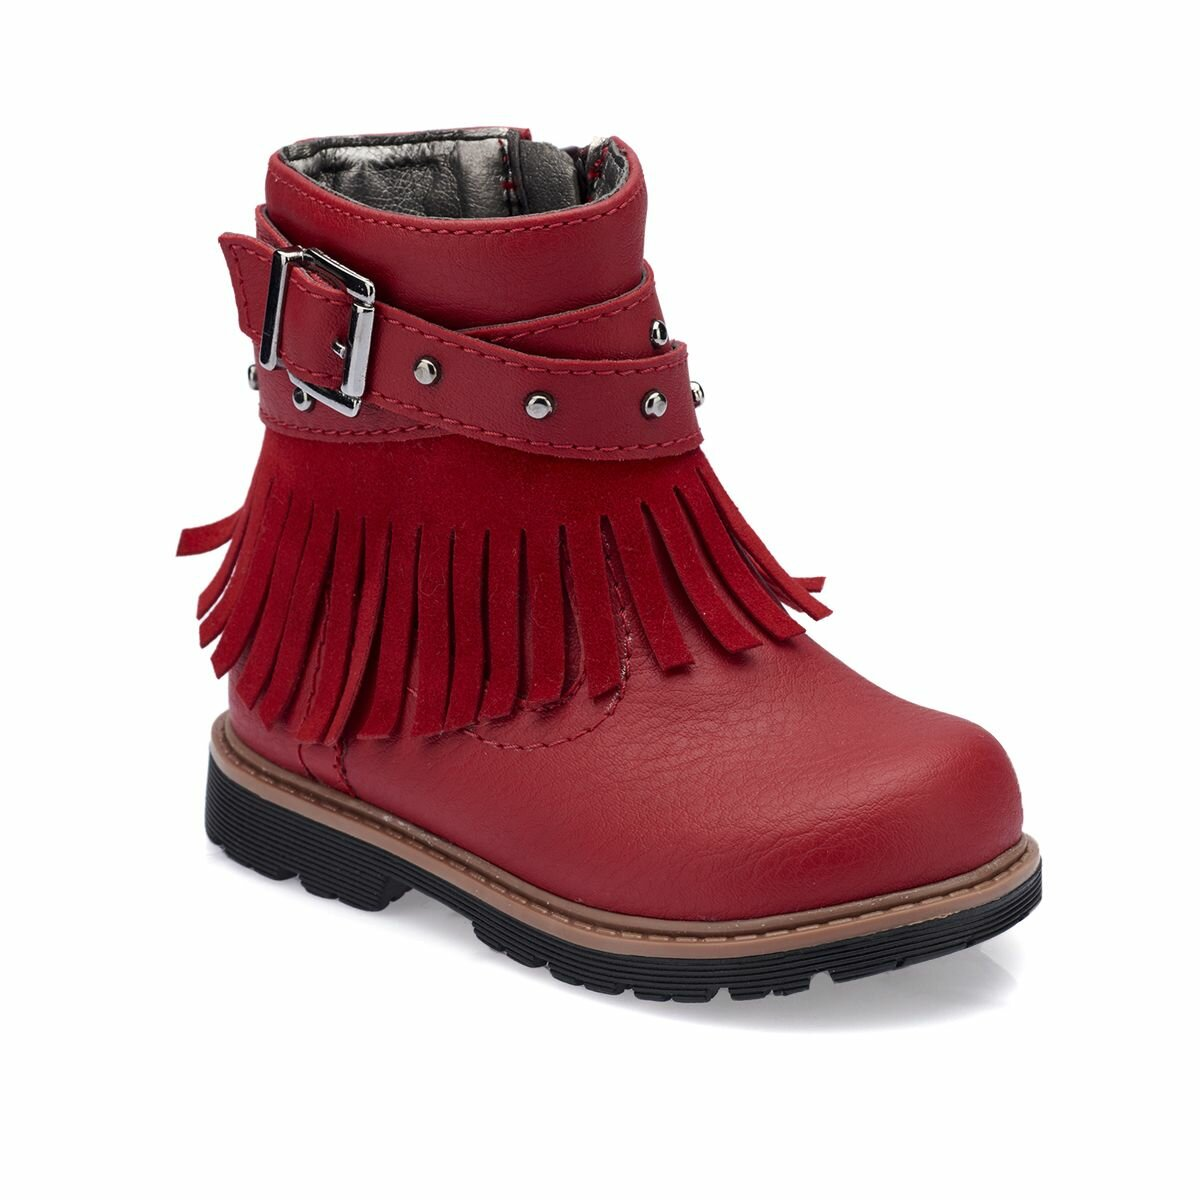 FLO 82. 510523.B Red Female Child Boots Polaris